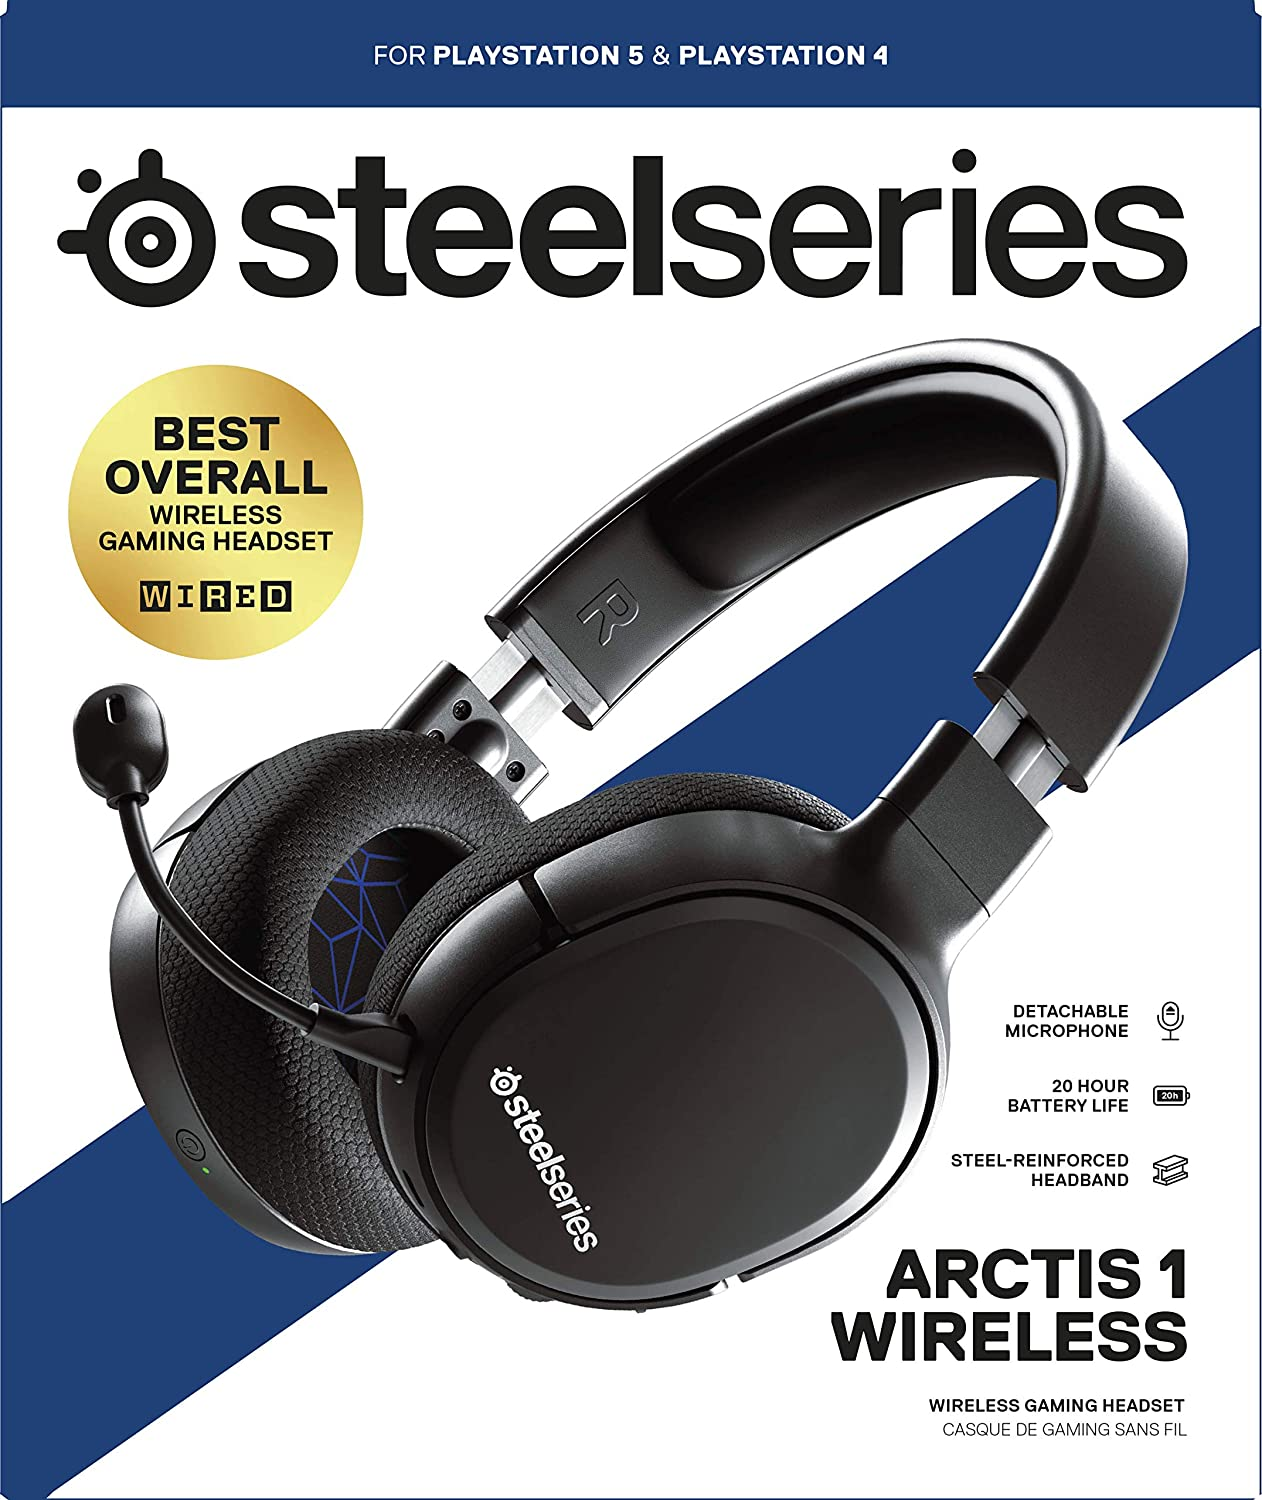 Steelseries Arctis 1 Wireless Gaming Headset Usb C Wireless Detachable Clearcast Microphone For Ps4 Pc Nintendo Switch Android Black Playstation 4 Games